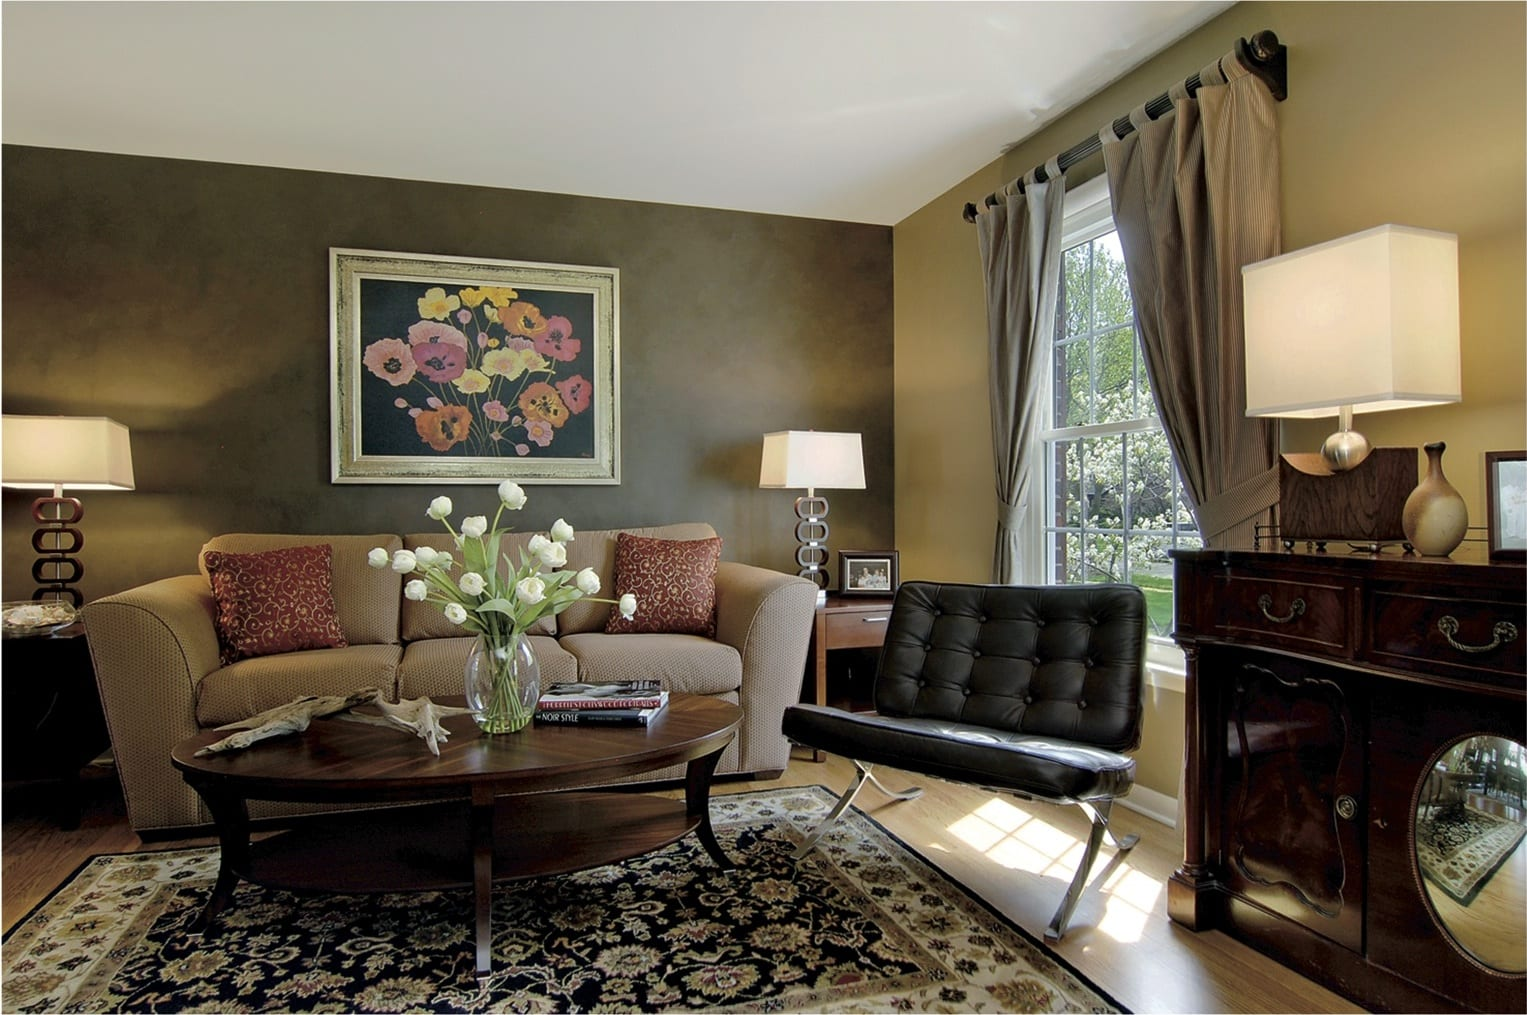 Interior Design In-Home Consultations for Palatine, Illinois residents